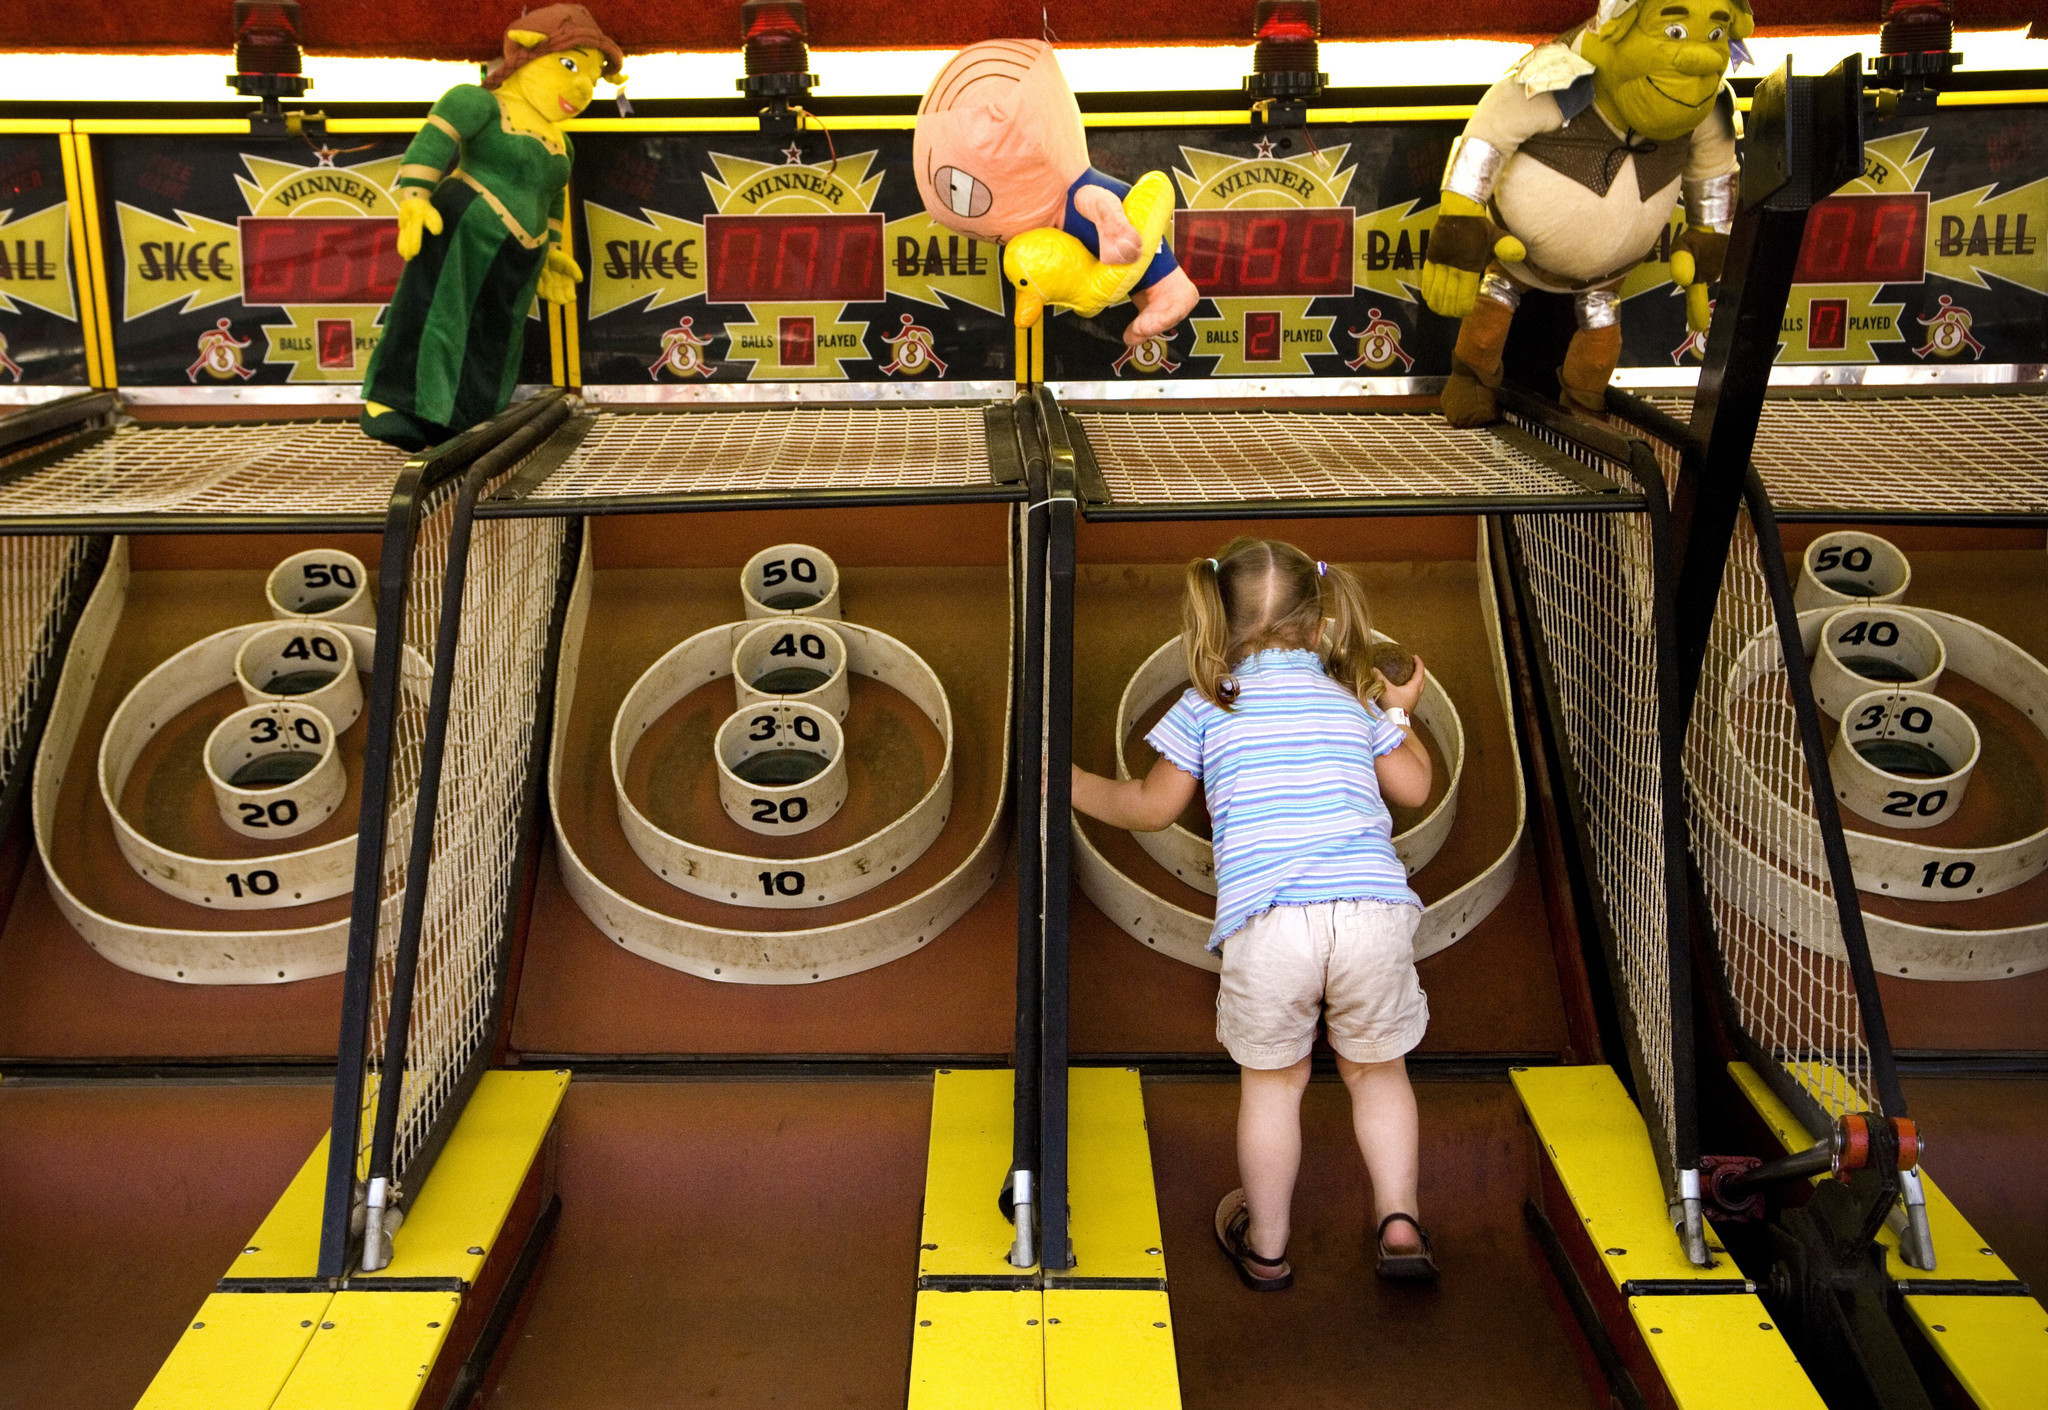 Wis Company Buys Skee Ball From Penn Manufacturer